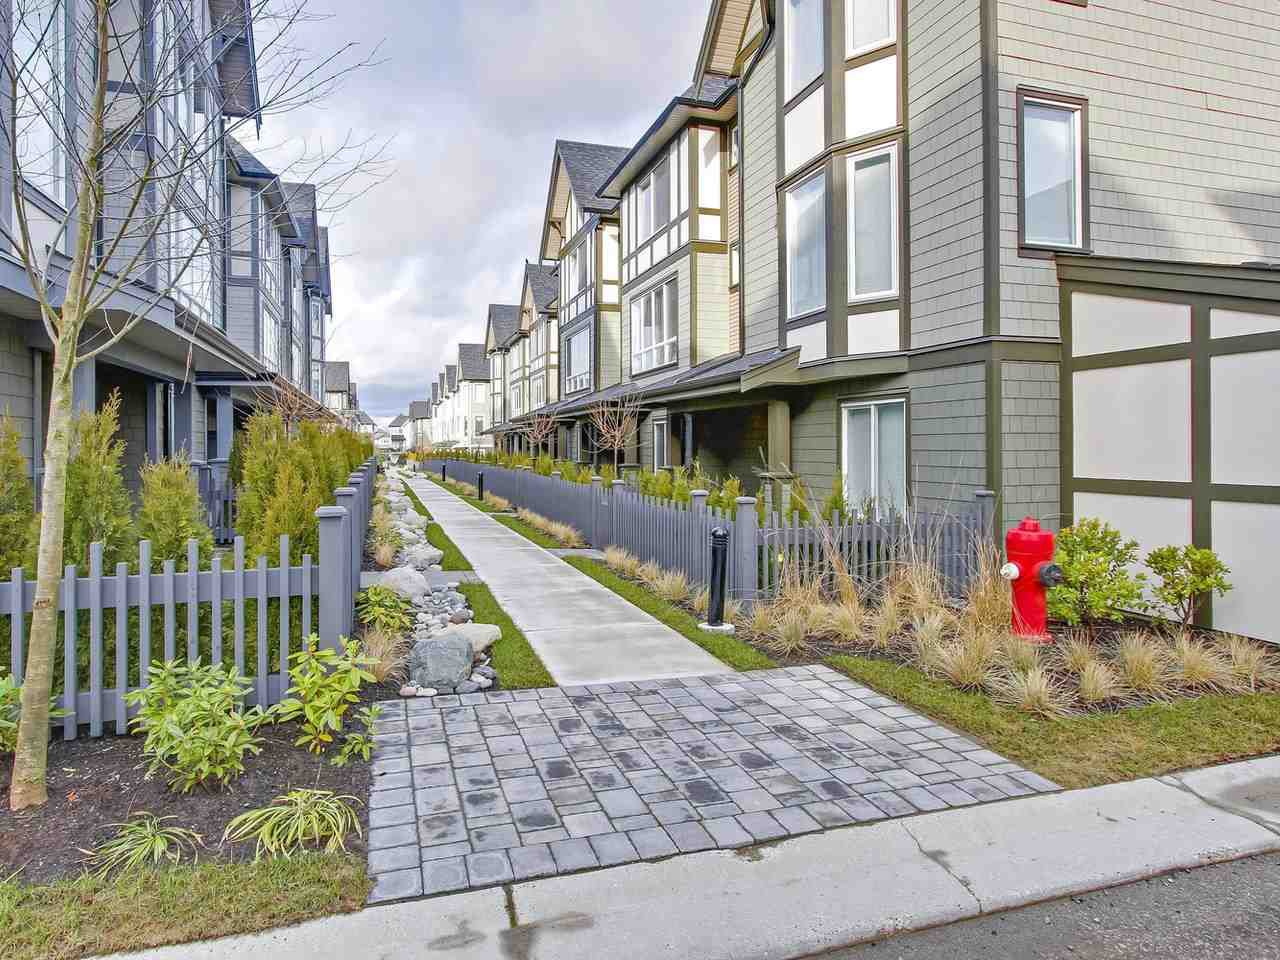 """Main Photo: 36 8138 204 Street in Langley: Willoughby Heights Townhouse for sale in """"Ashbury & Oak"""" : MLS®# R2235777"""